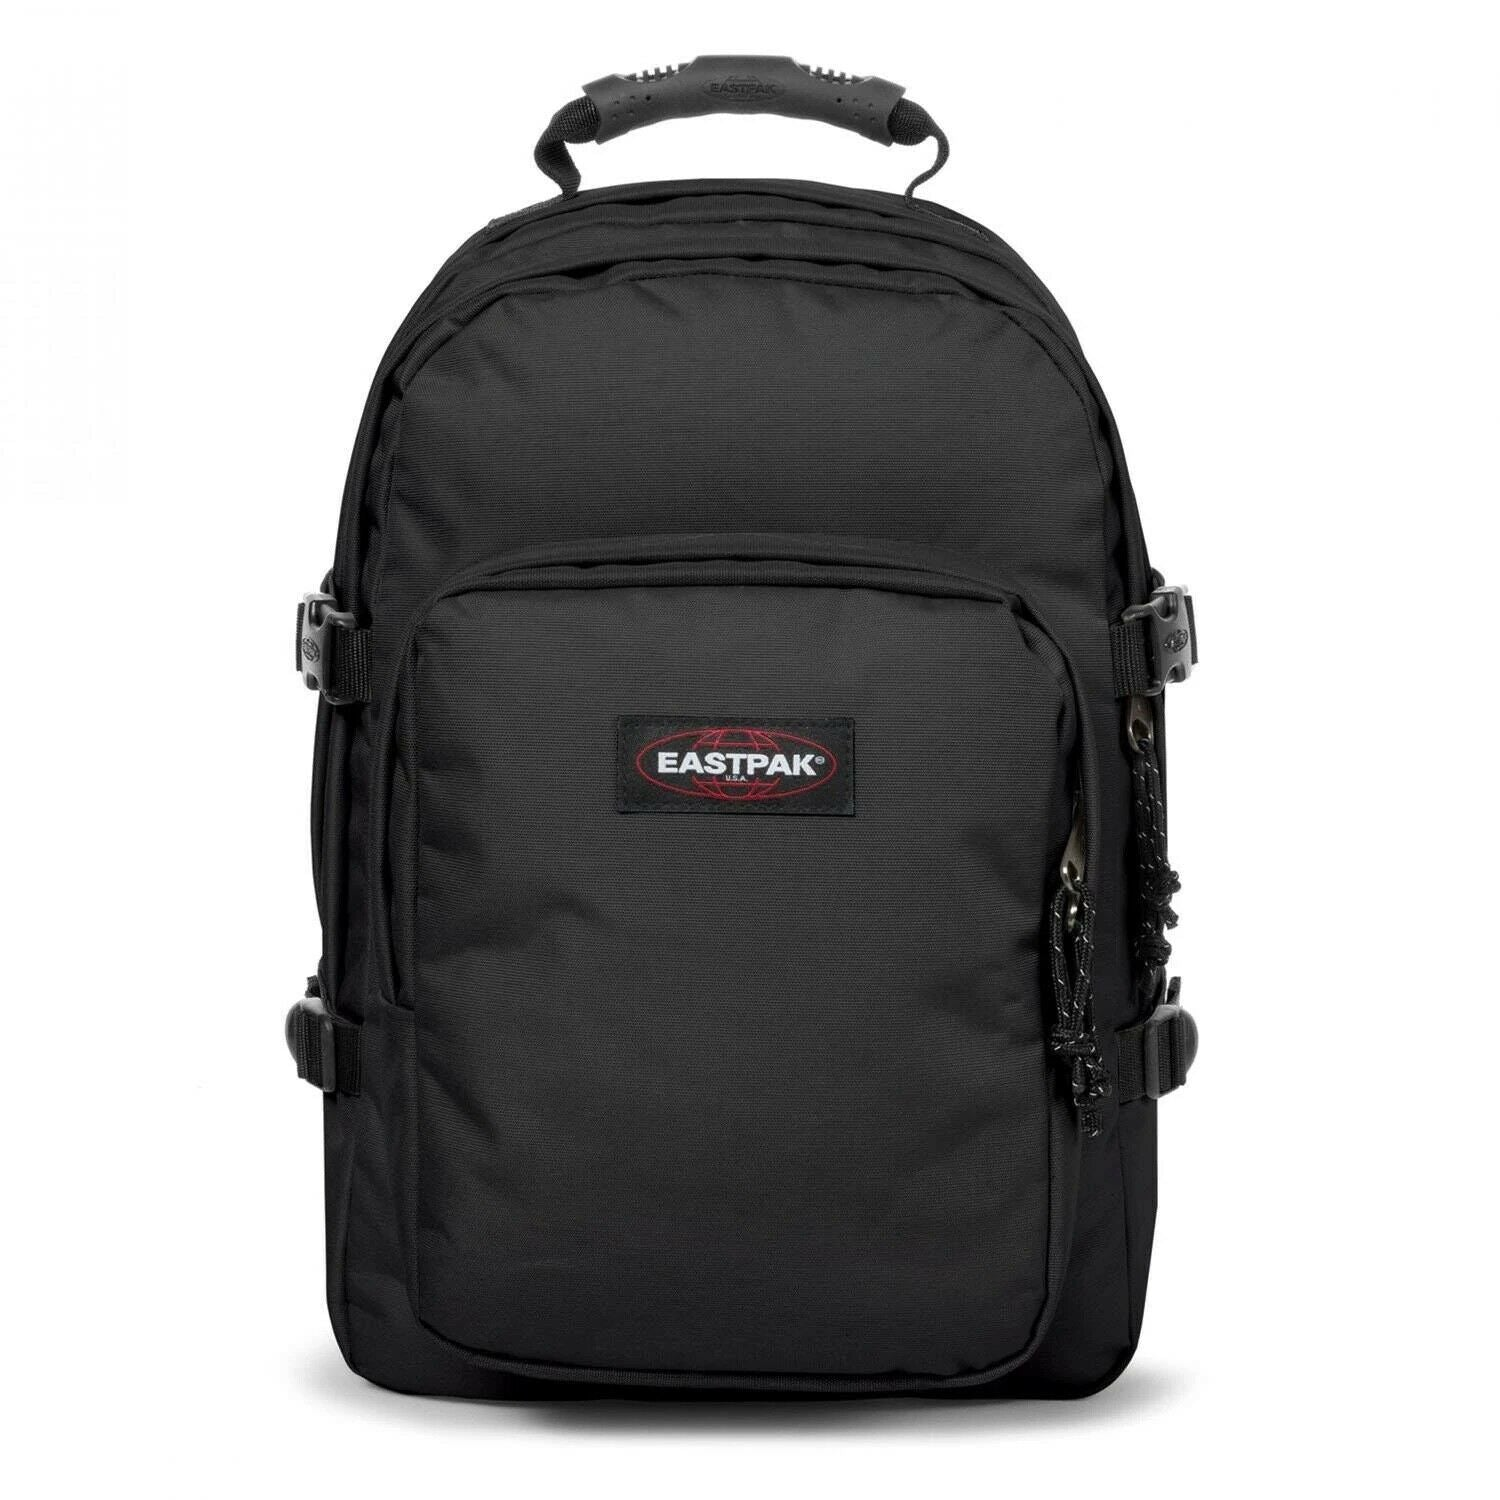 Eastpak Provider Backpacks